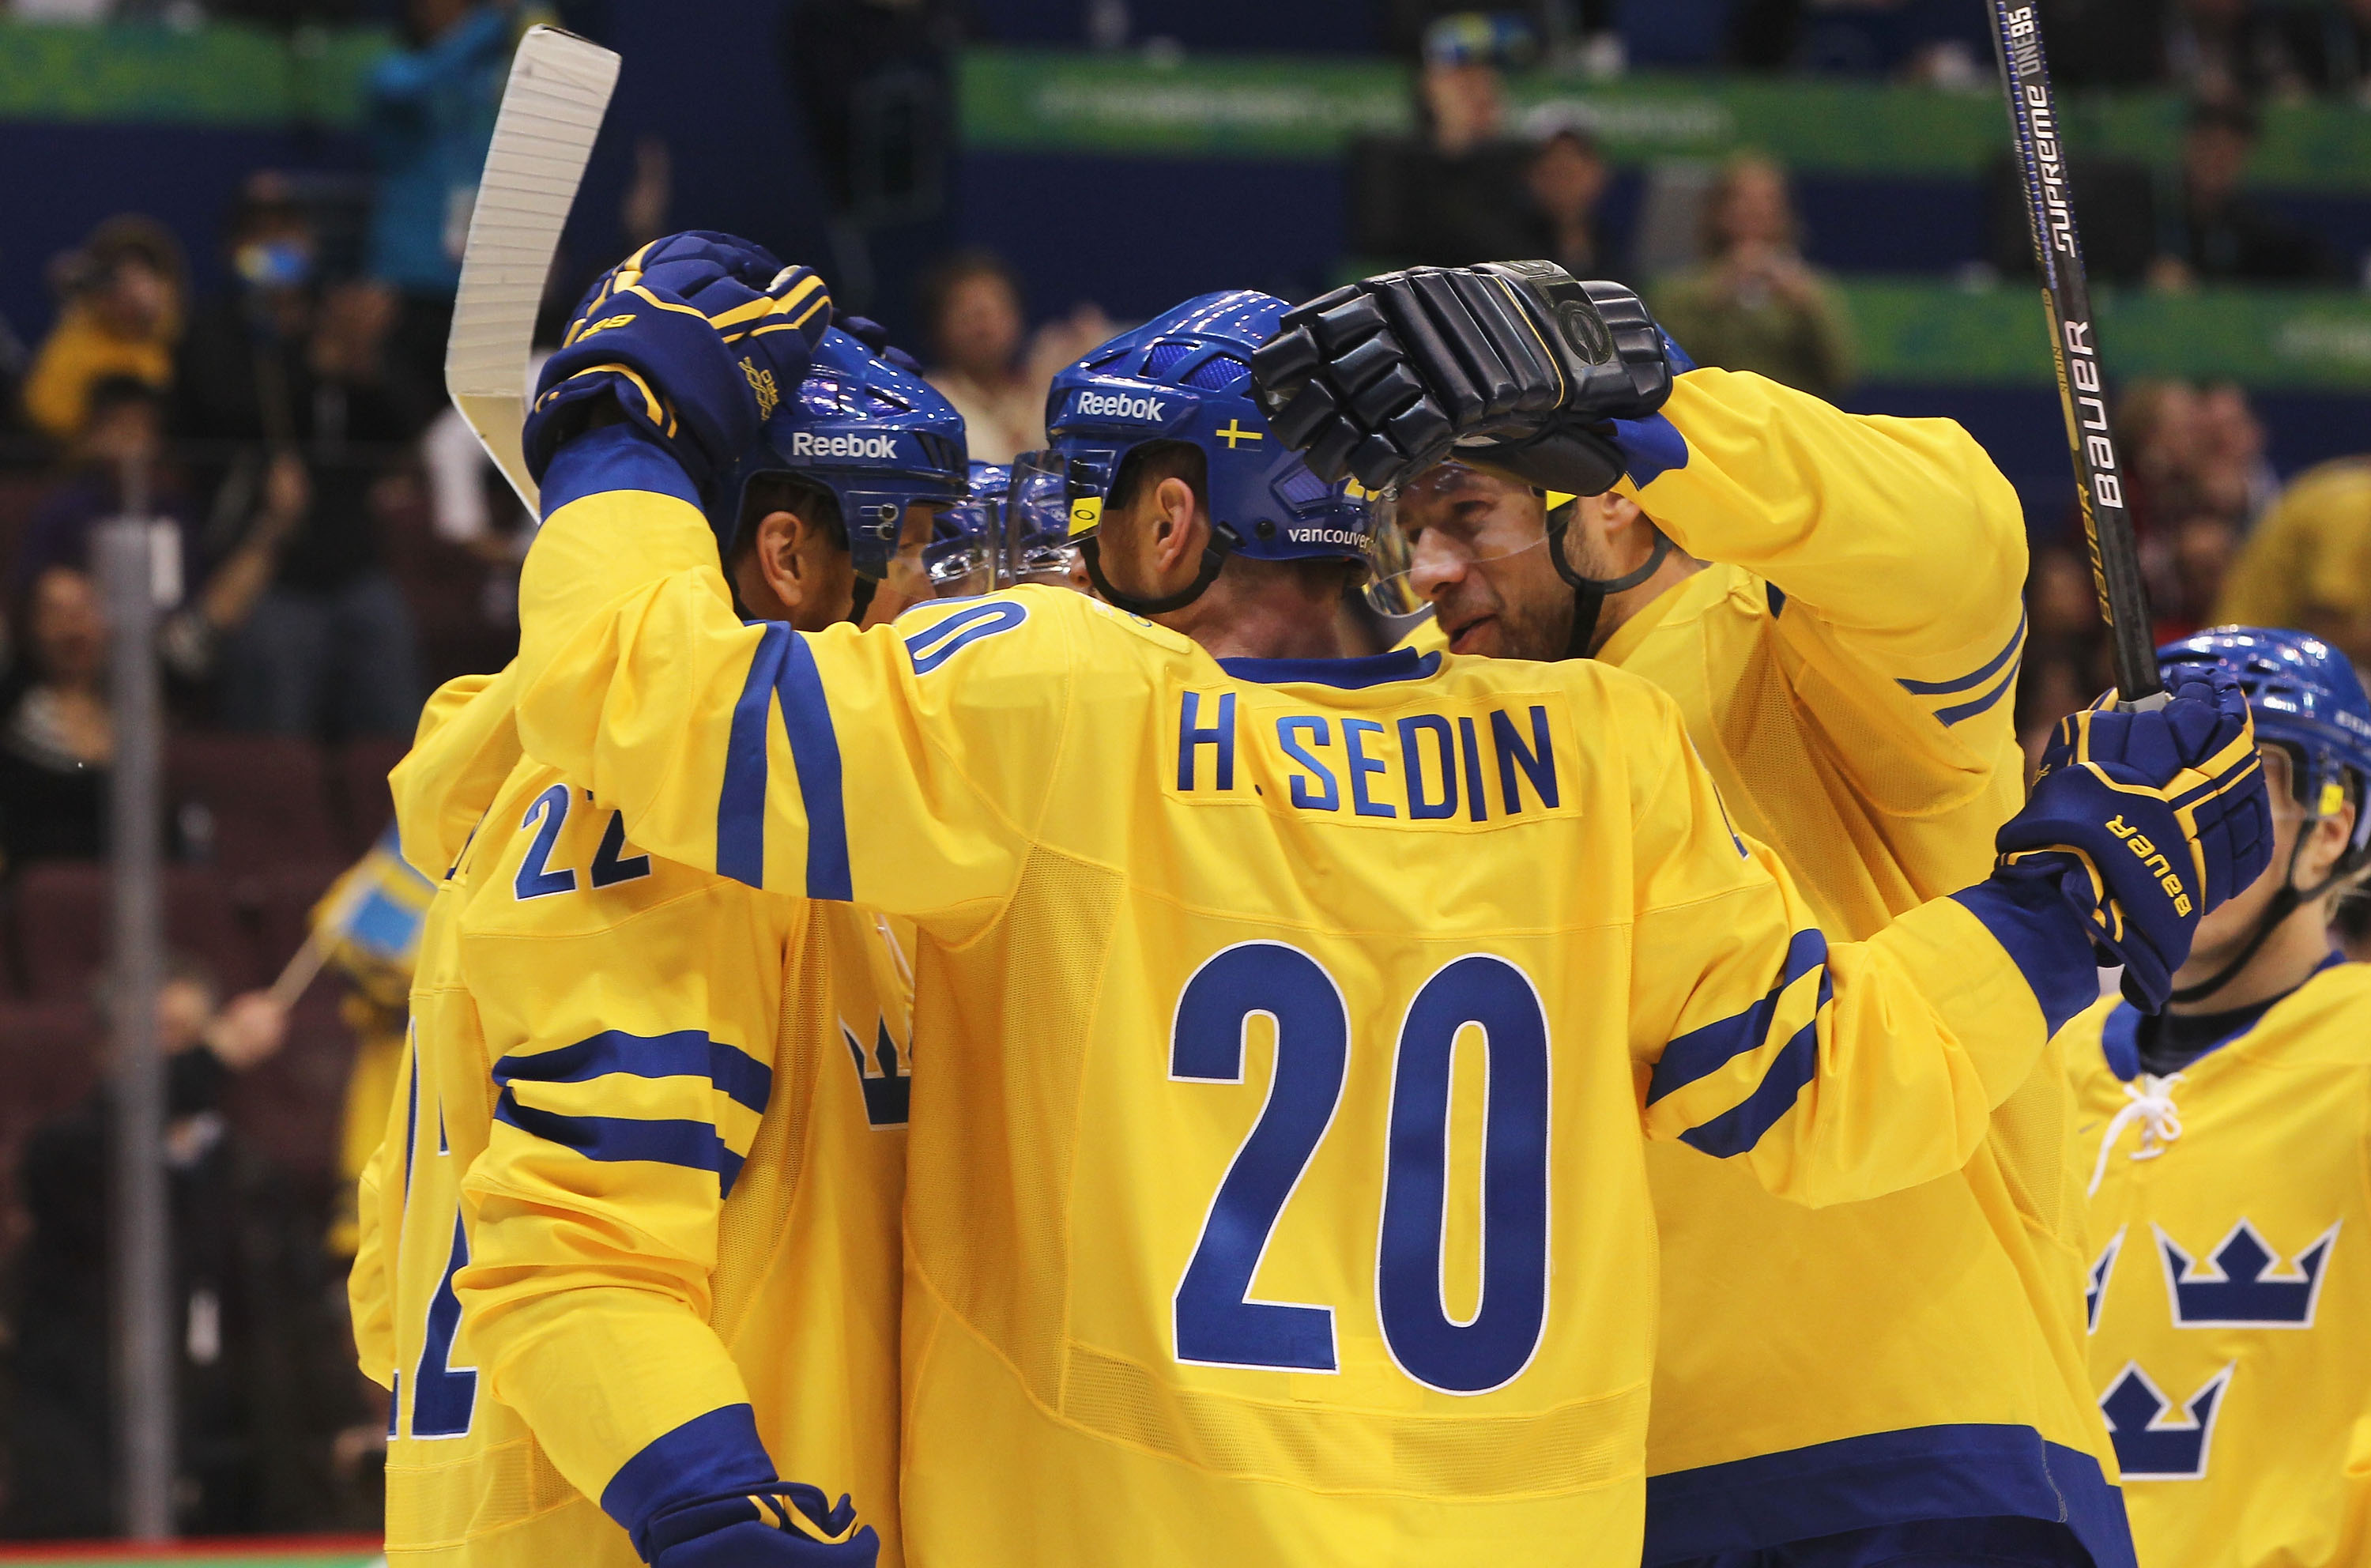 Sweden's Olympic roster sees no Jonas Brodin, Victor Hedman